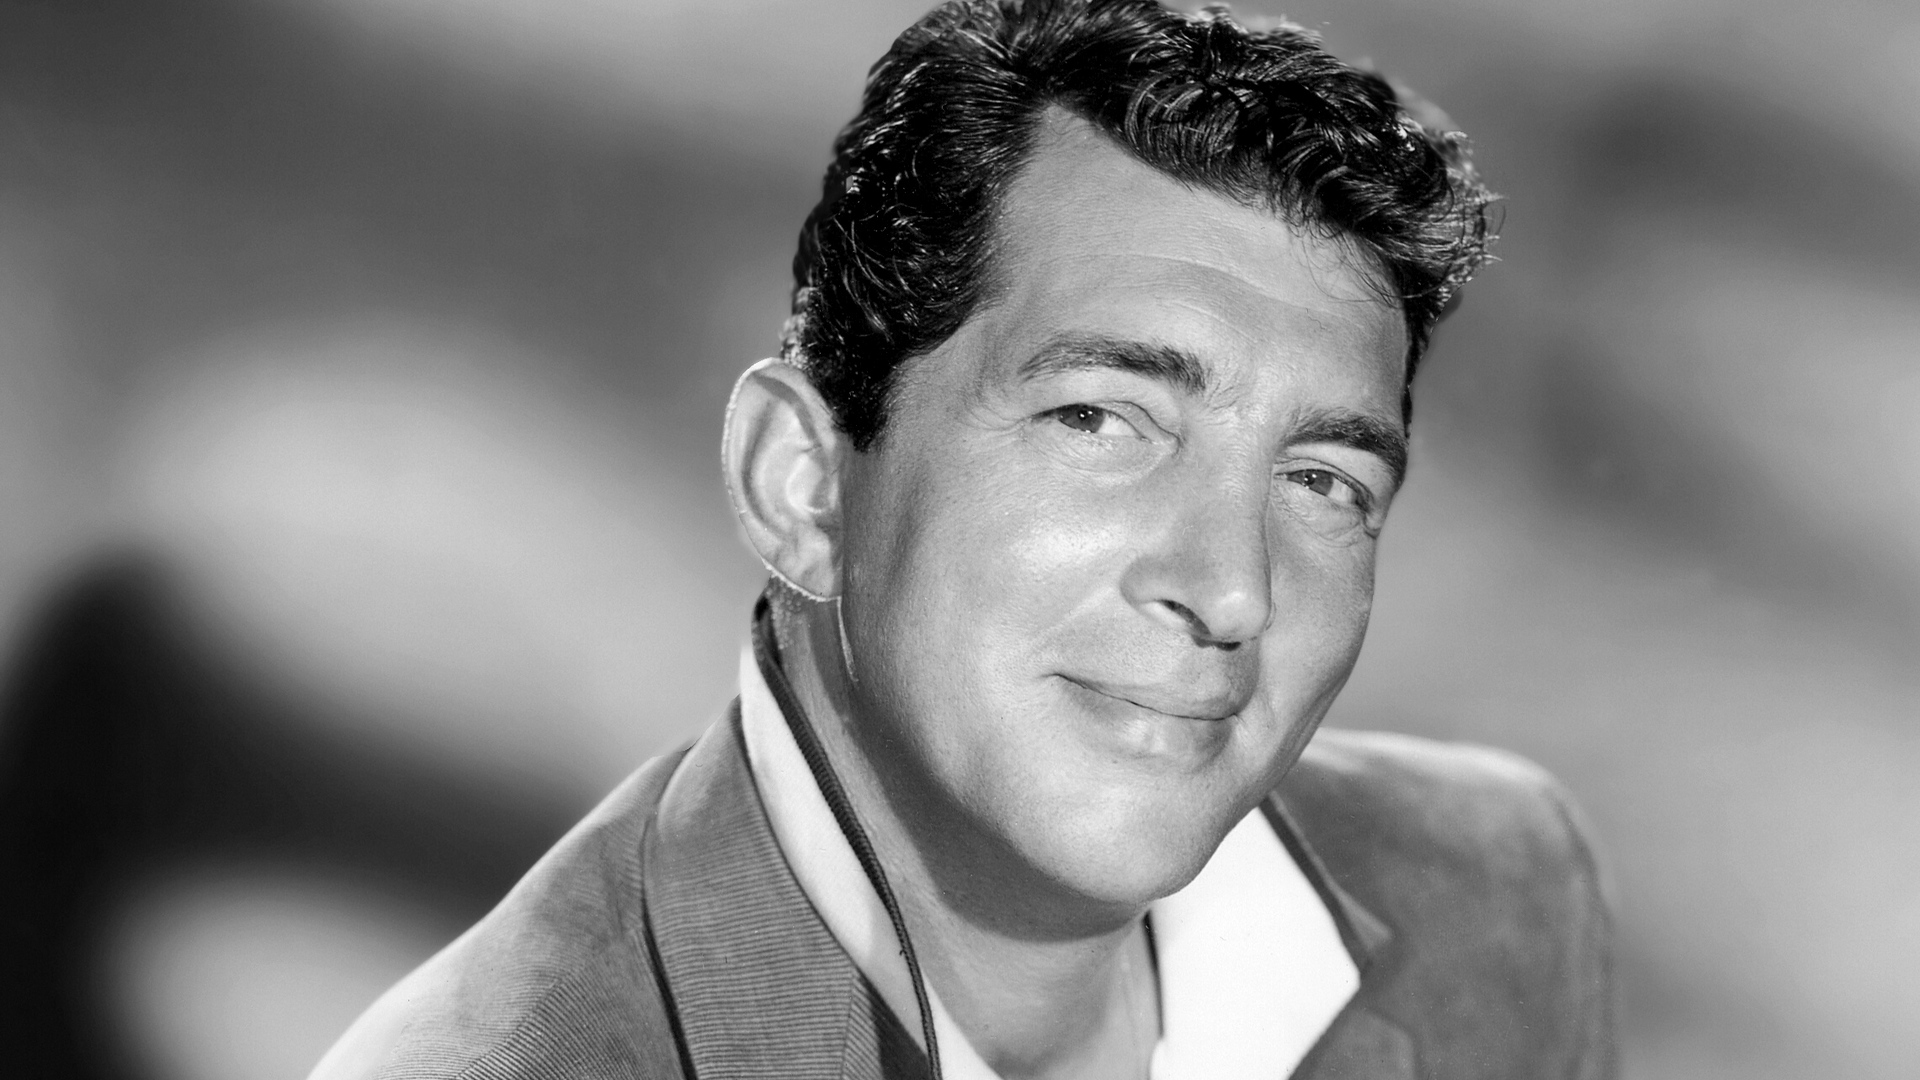 DEAN MARTIN - HOLIDAY SONGS 1006